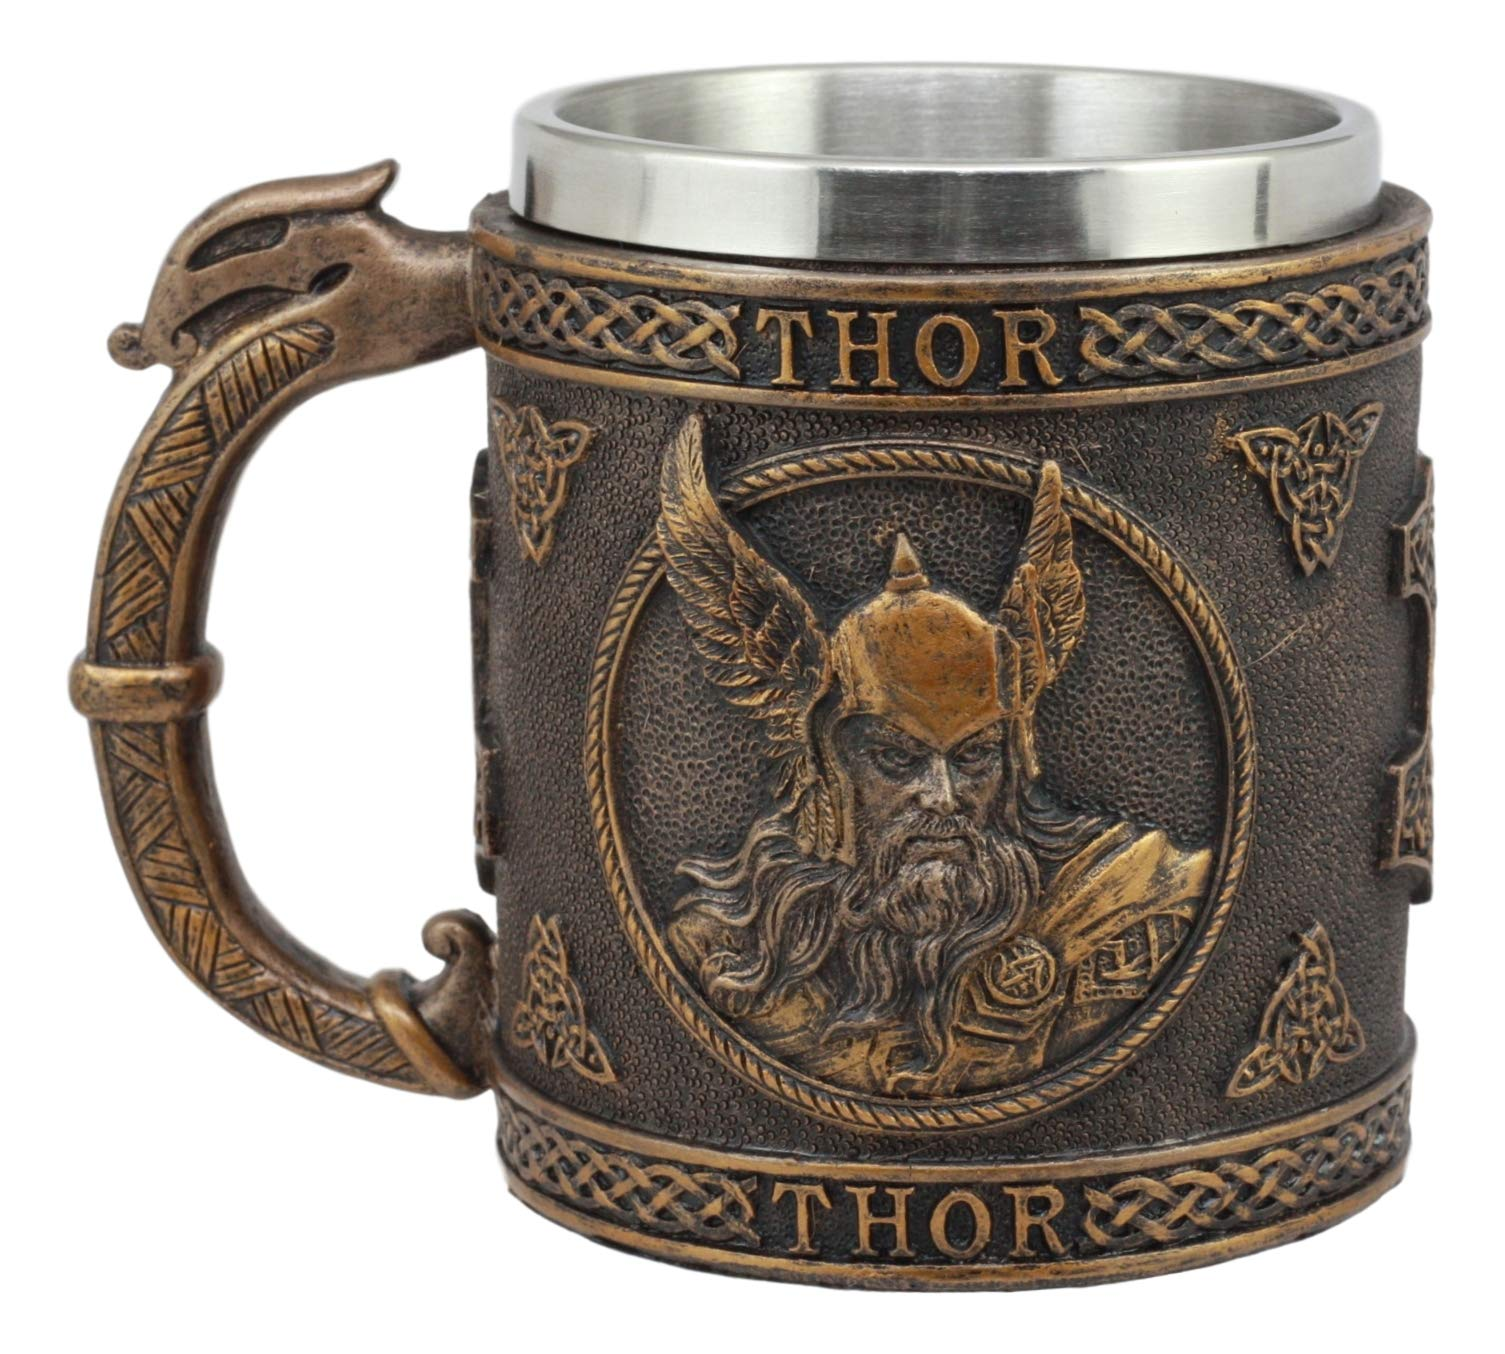 Ebros Gift Norse Mythology Viking God Of Thunder Thor Coffee Mug Resin Drink Cup Tankard Beer Stein With Stainless Steel Liner For Kitchen Home Decor Medieval Renaissance Party Hosting Accessory